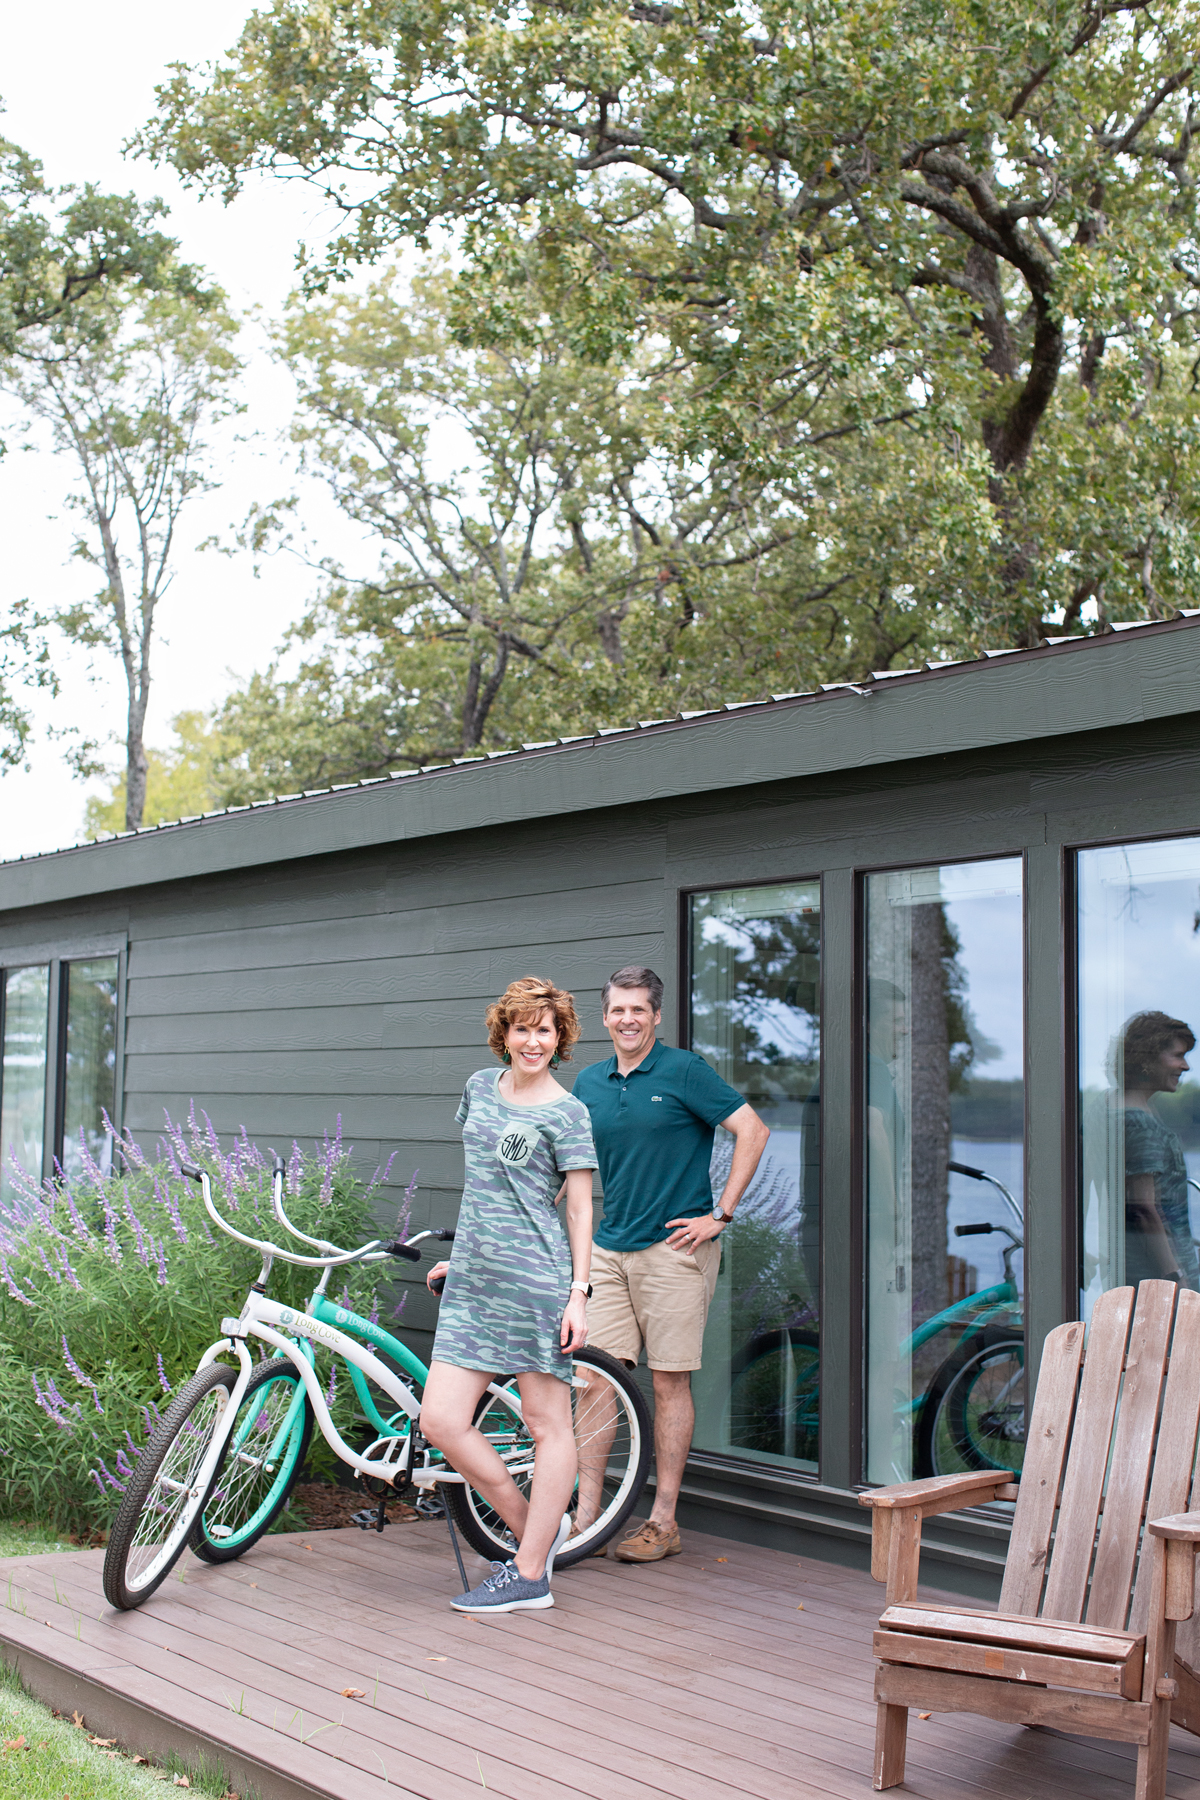 man and woman standing on a porch next to two bikes